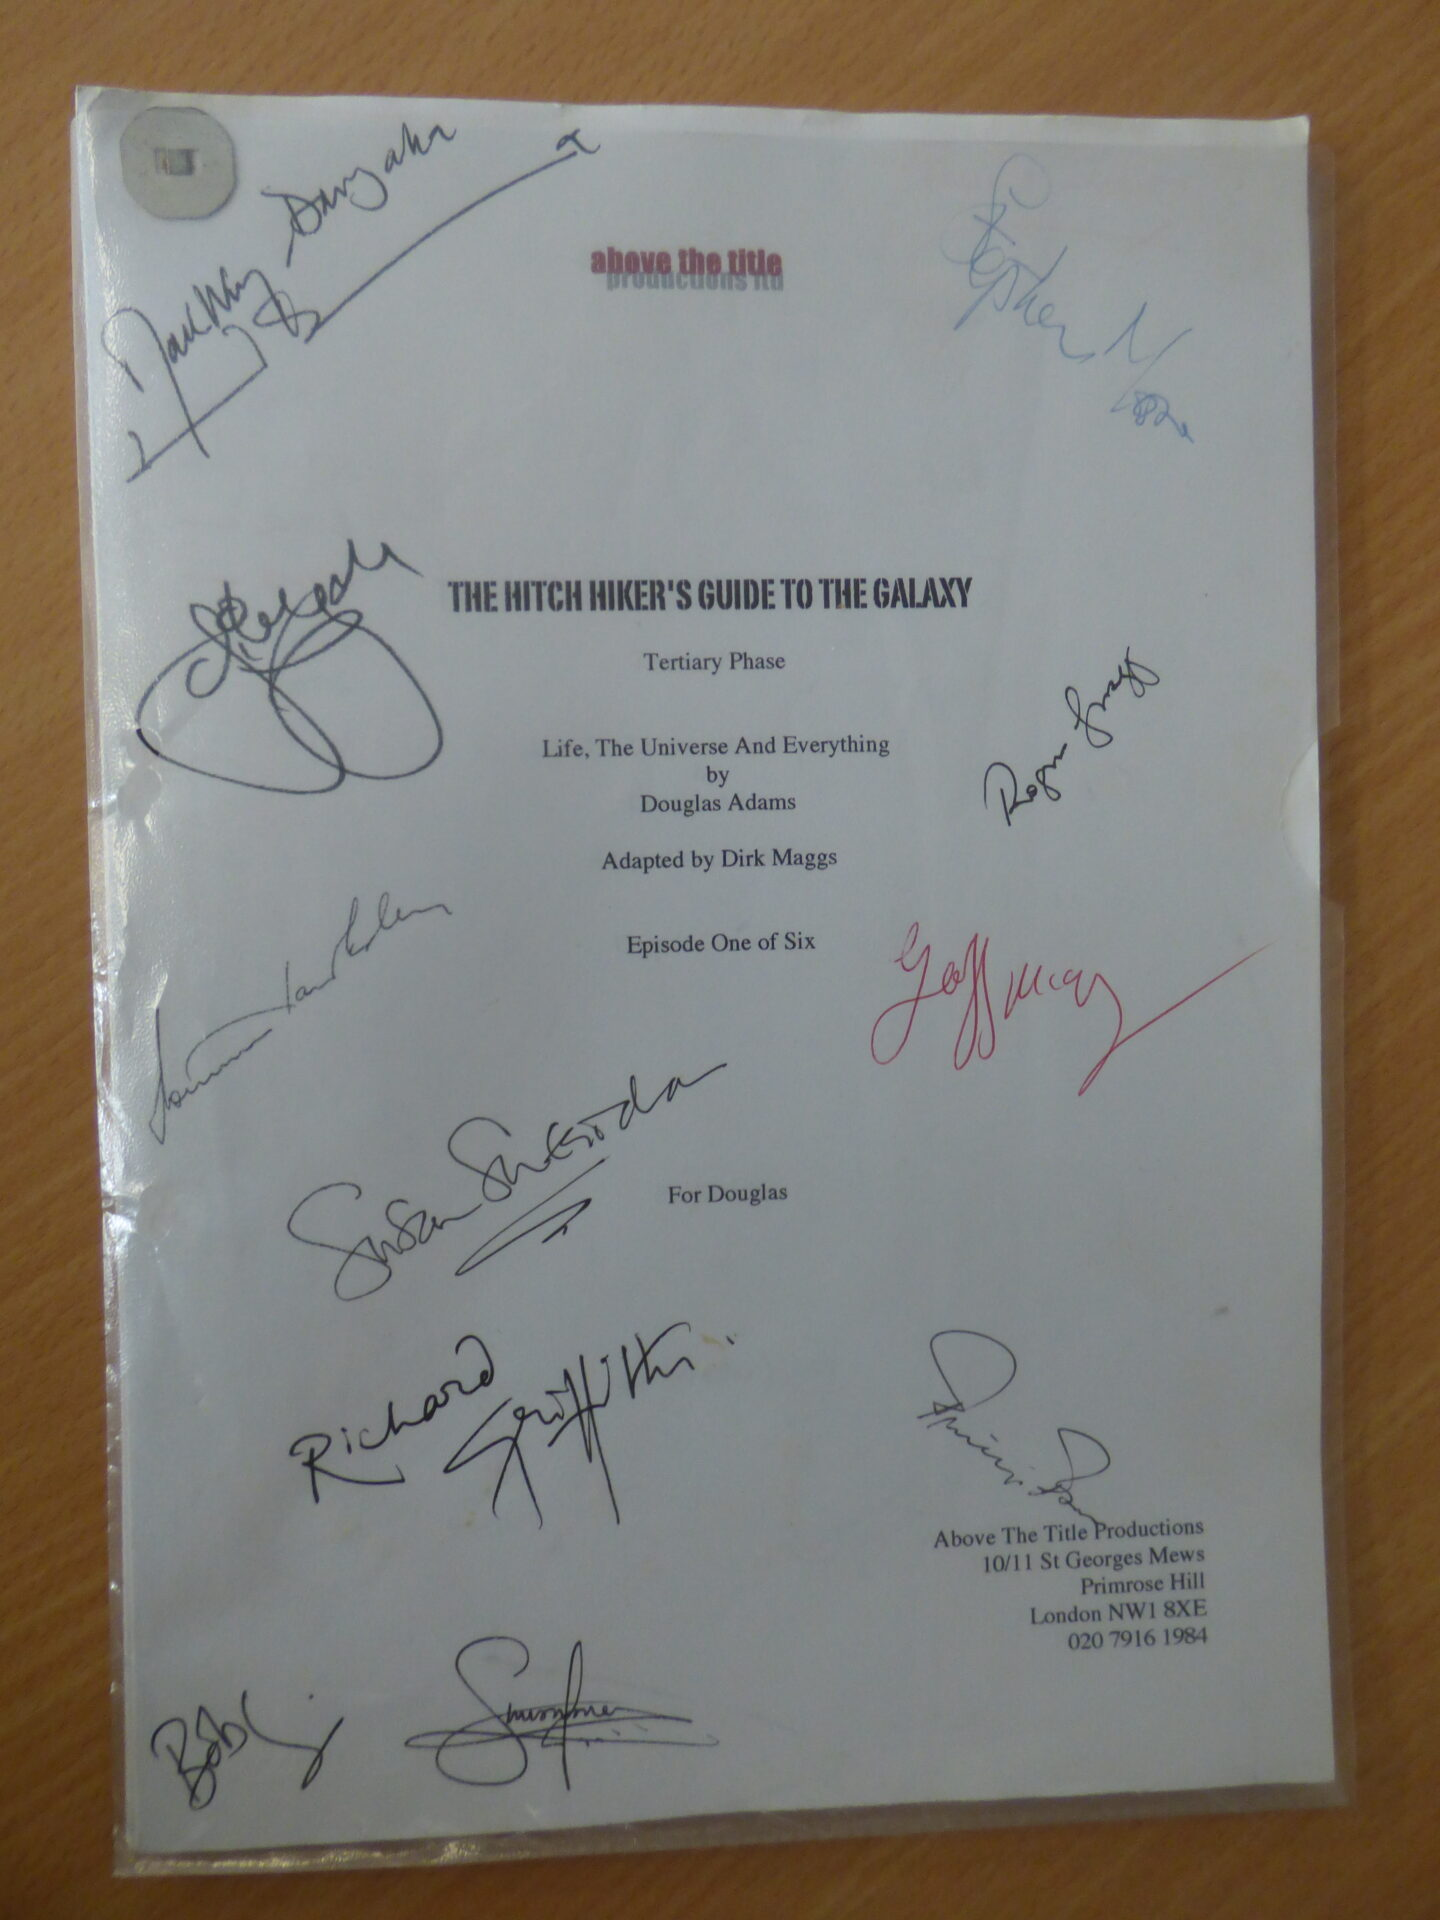 Hitchhikers Guide to the Galaxy signed script